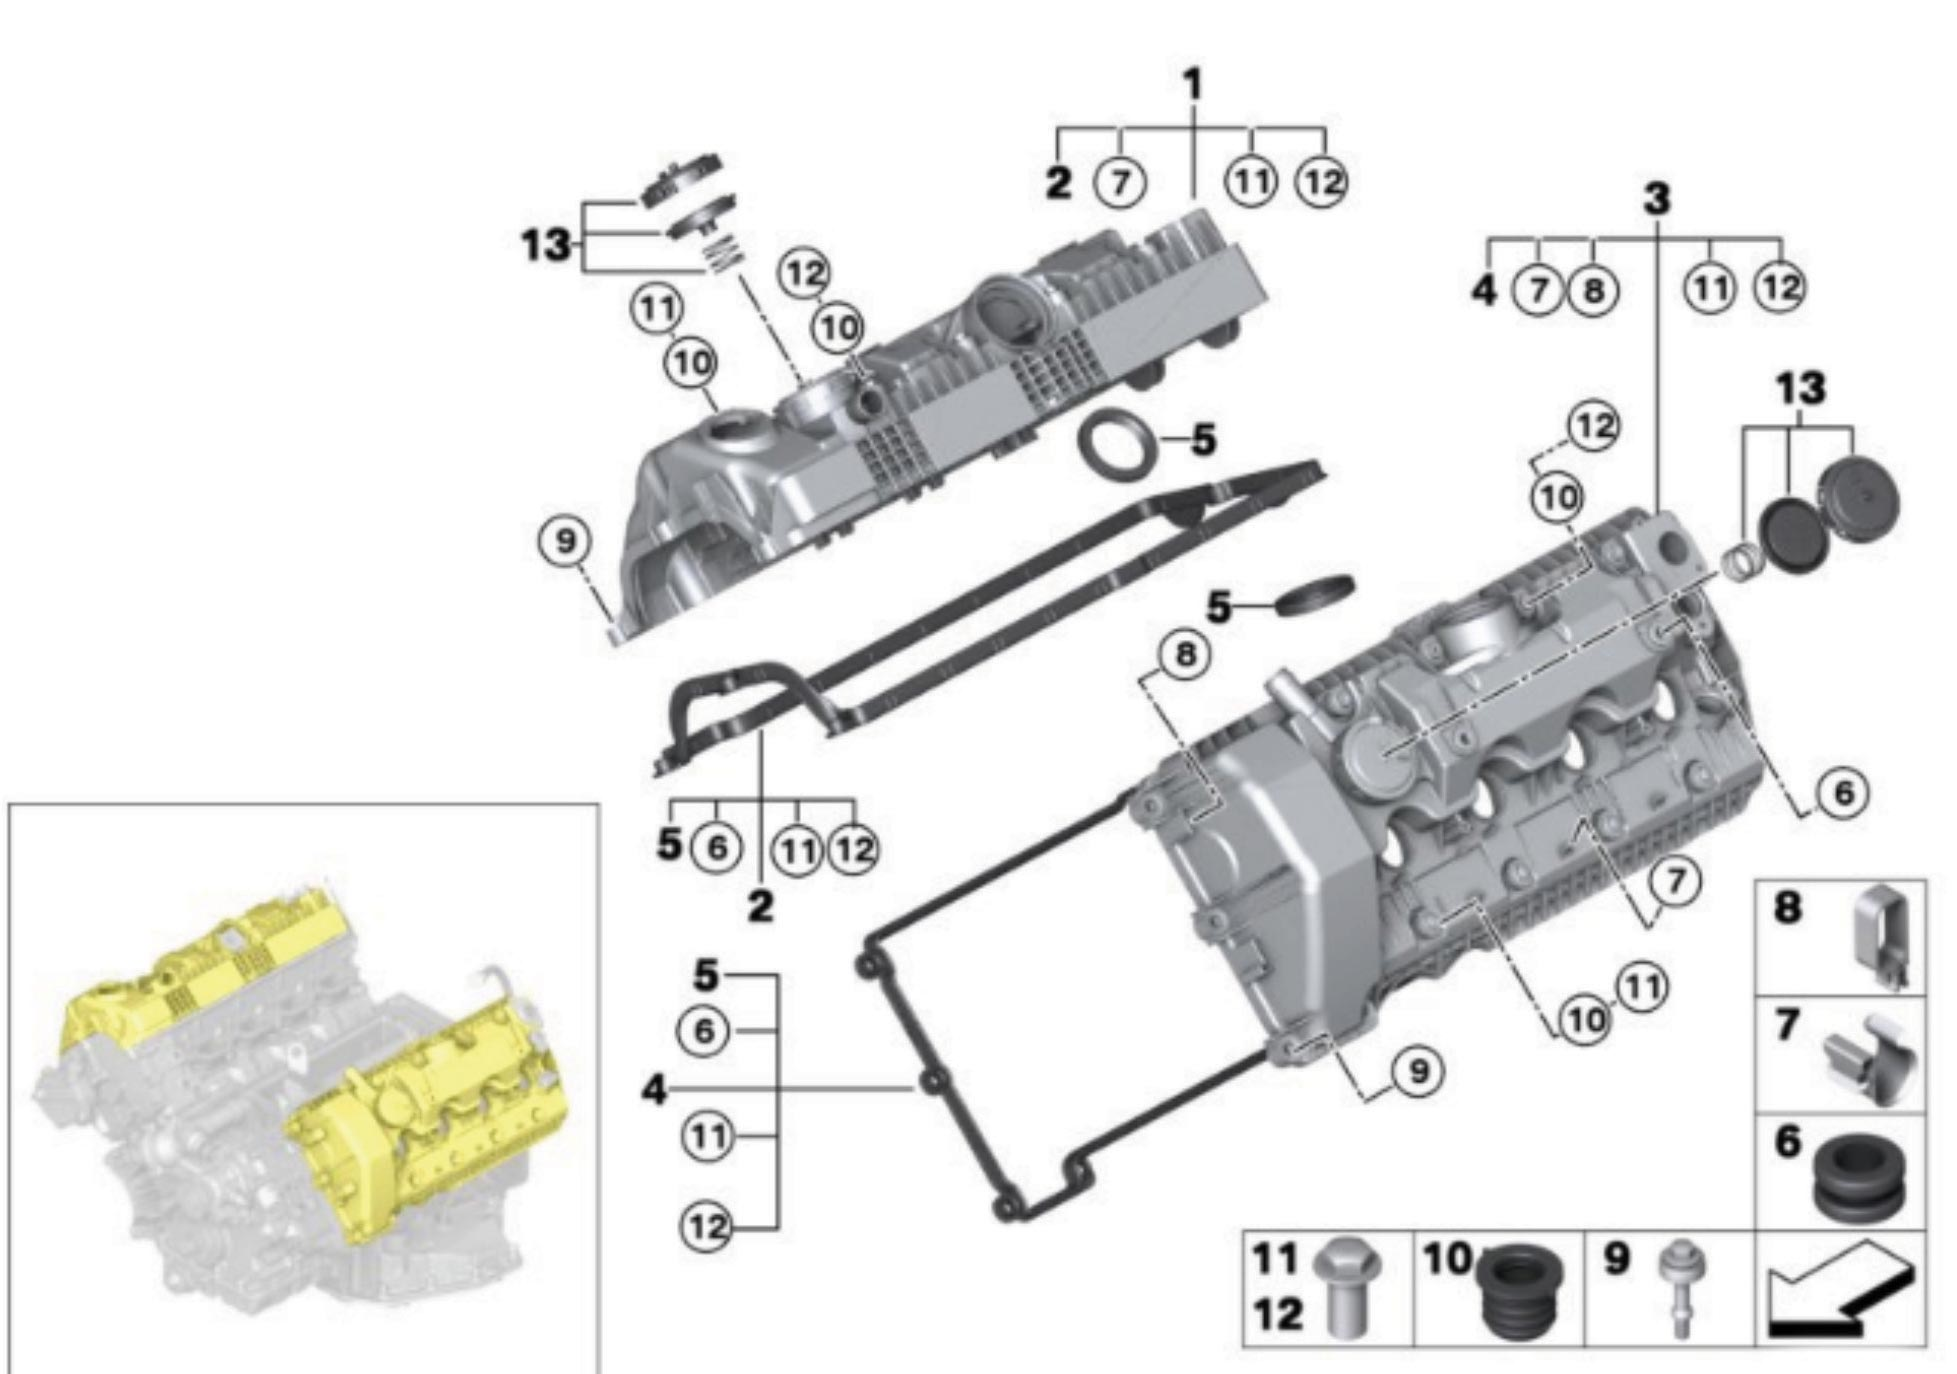 M50 Engine Diagram Great Installation Of Wiring E36 Bmw N63 Explained Rh 8 11 Corruptionincoal Org